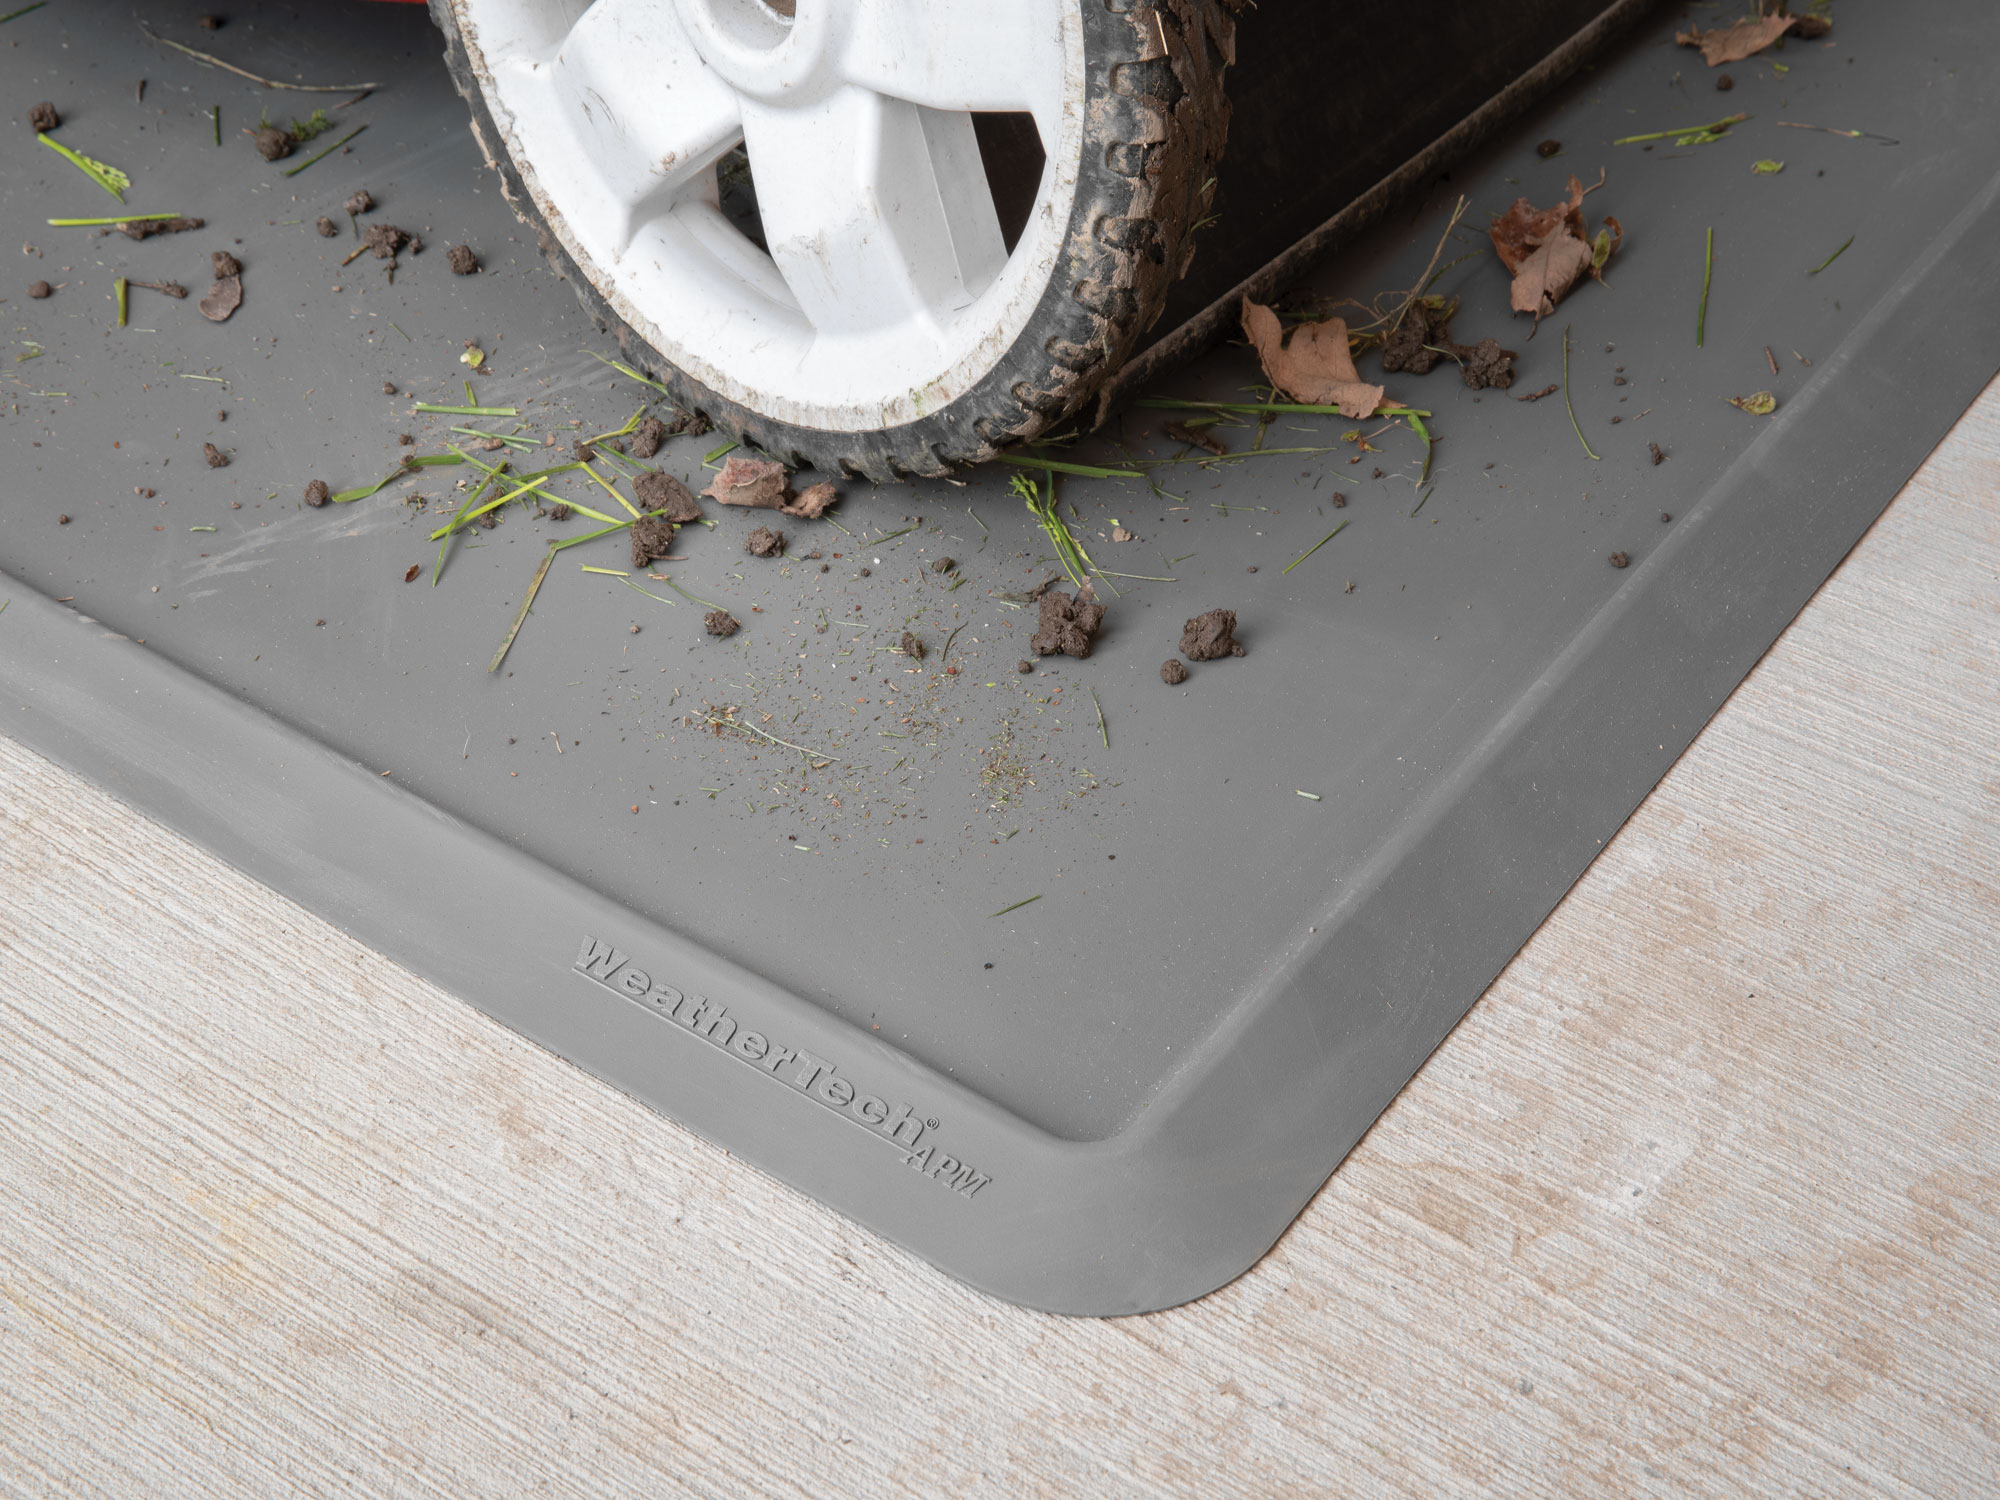 Close up of a lawnmover on an all purpose mat.